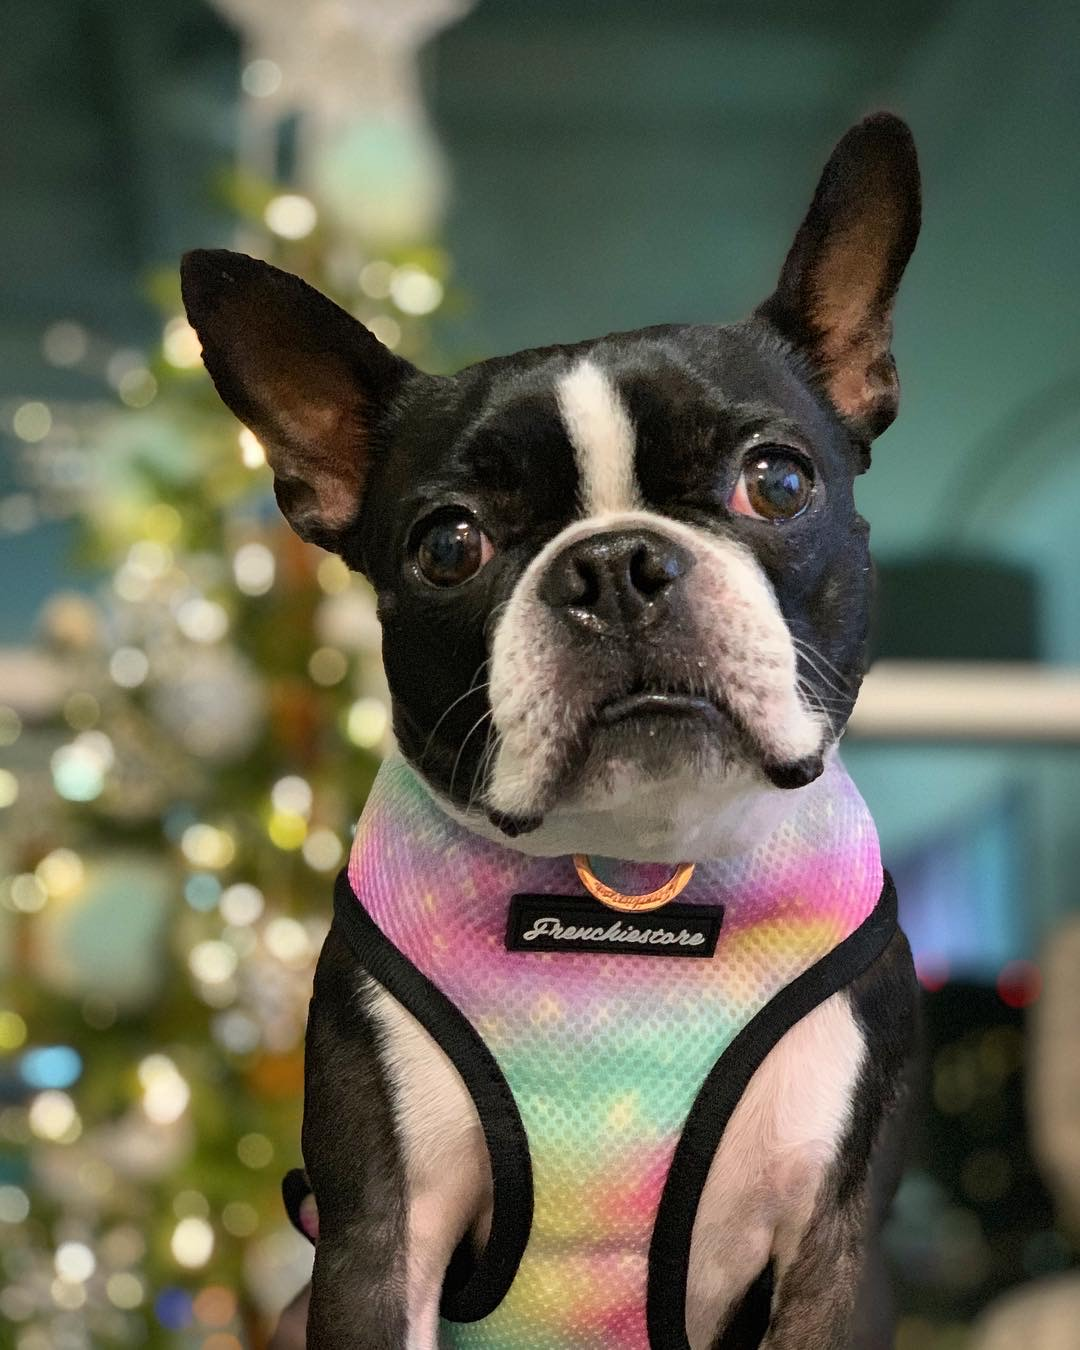 Boston Terrier doggy harness